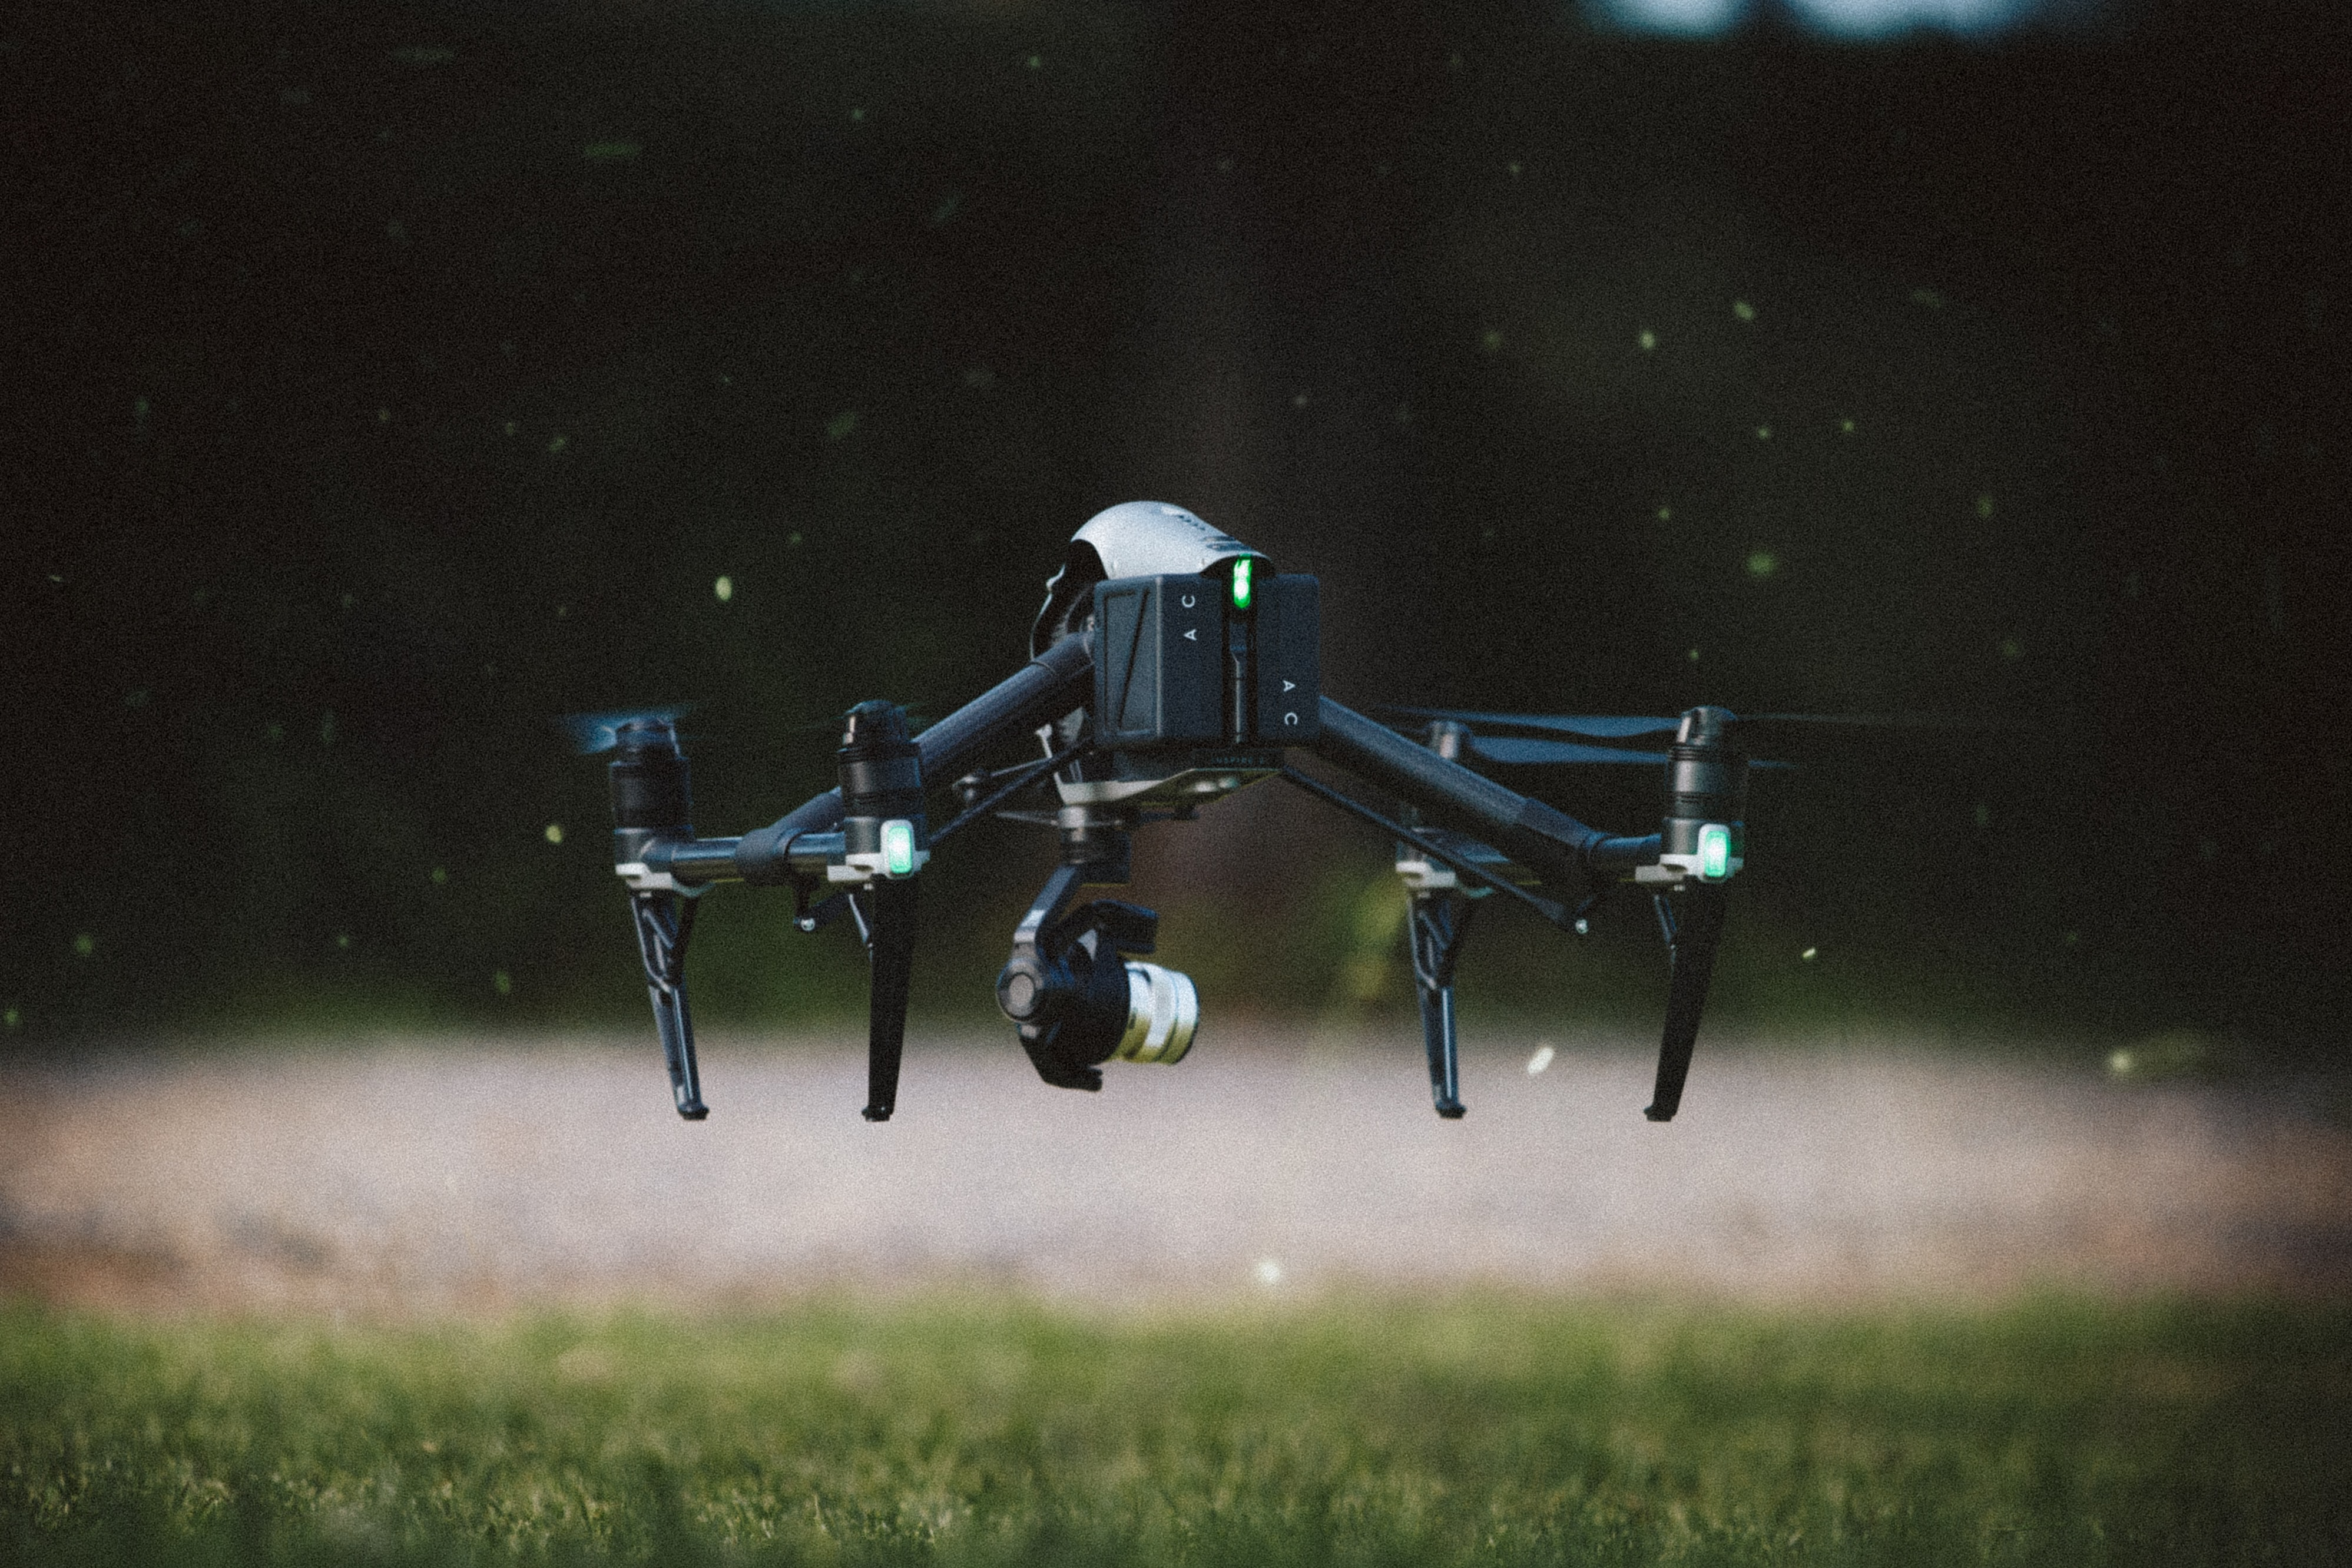 selective focus photography of black and gray quadcopter drone taking flight